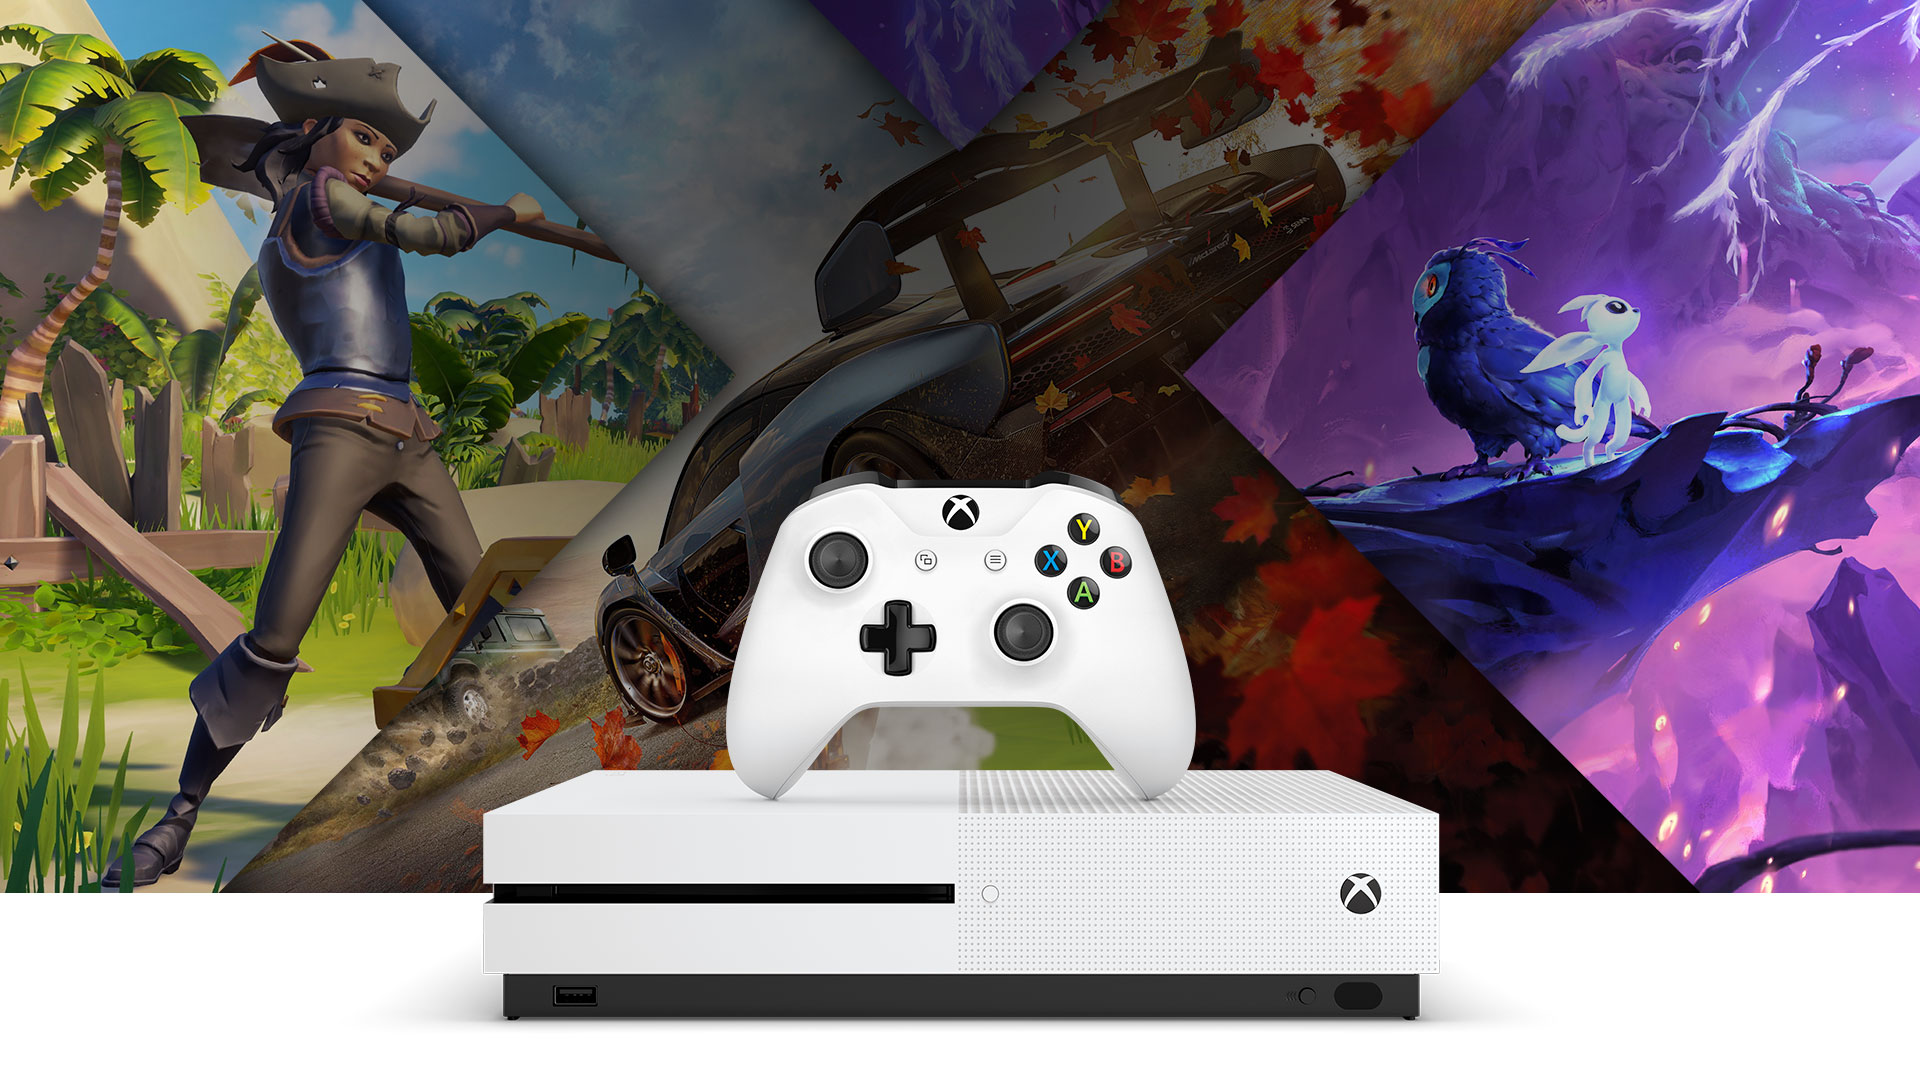 Vue de face de la Xbox One S et d'une manette sans fil blanches entourées d'illustrations de Sea of Thieves, Forza Horizon 4, Ori et Ori and the Will of Wisps.